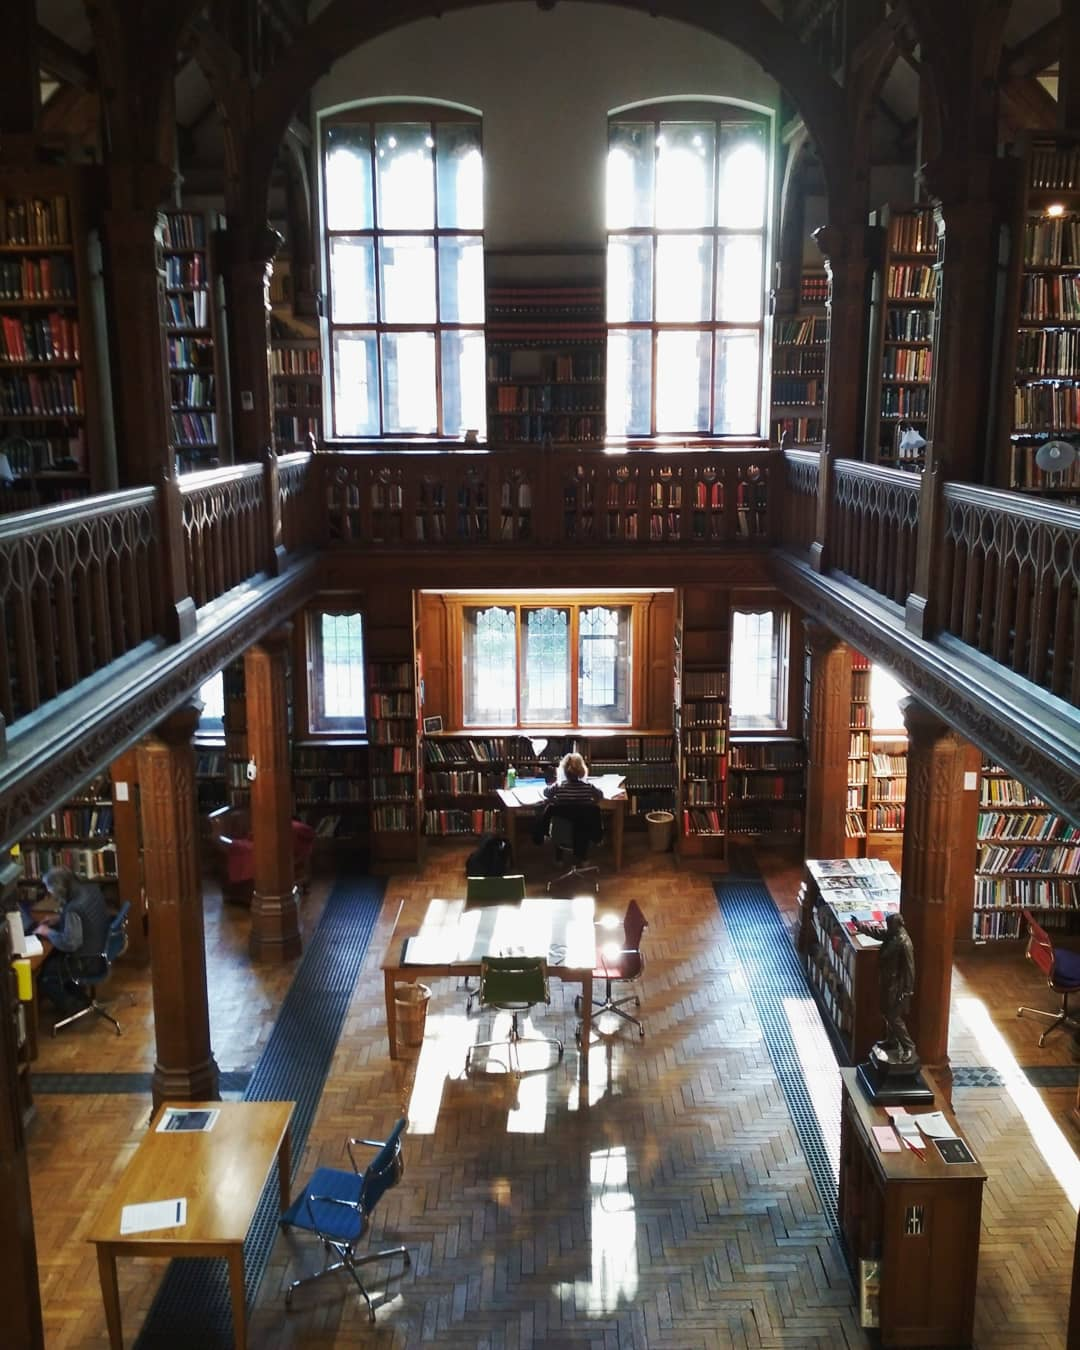 Gladstone's Library - Theological Room